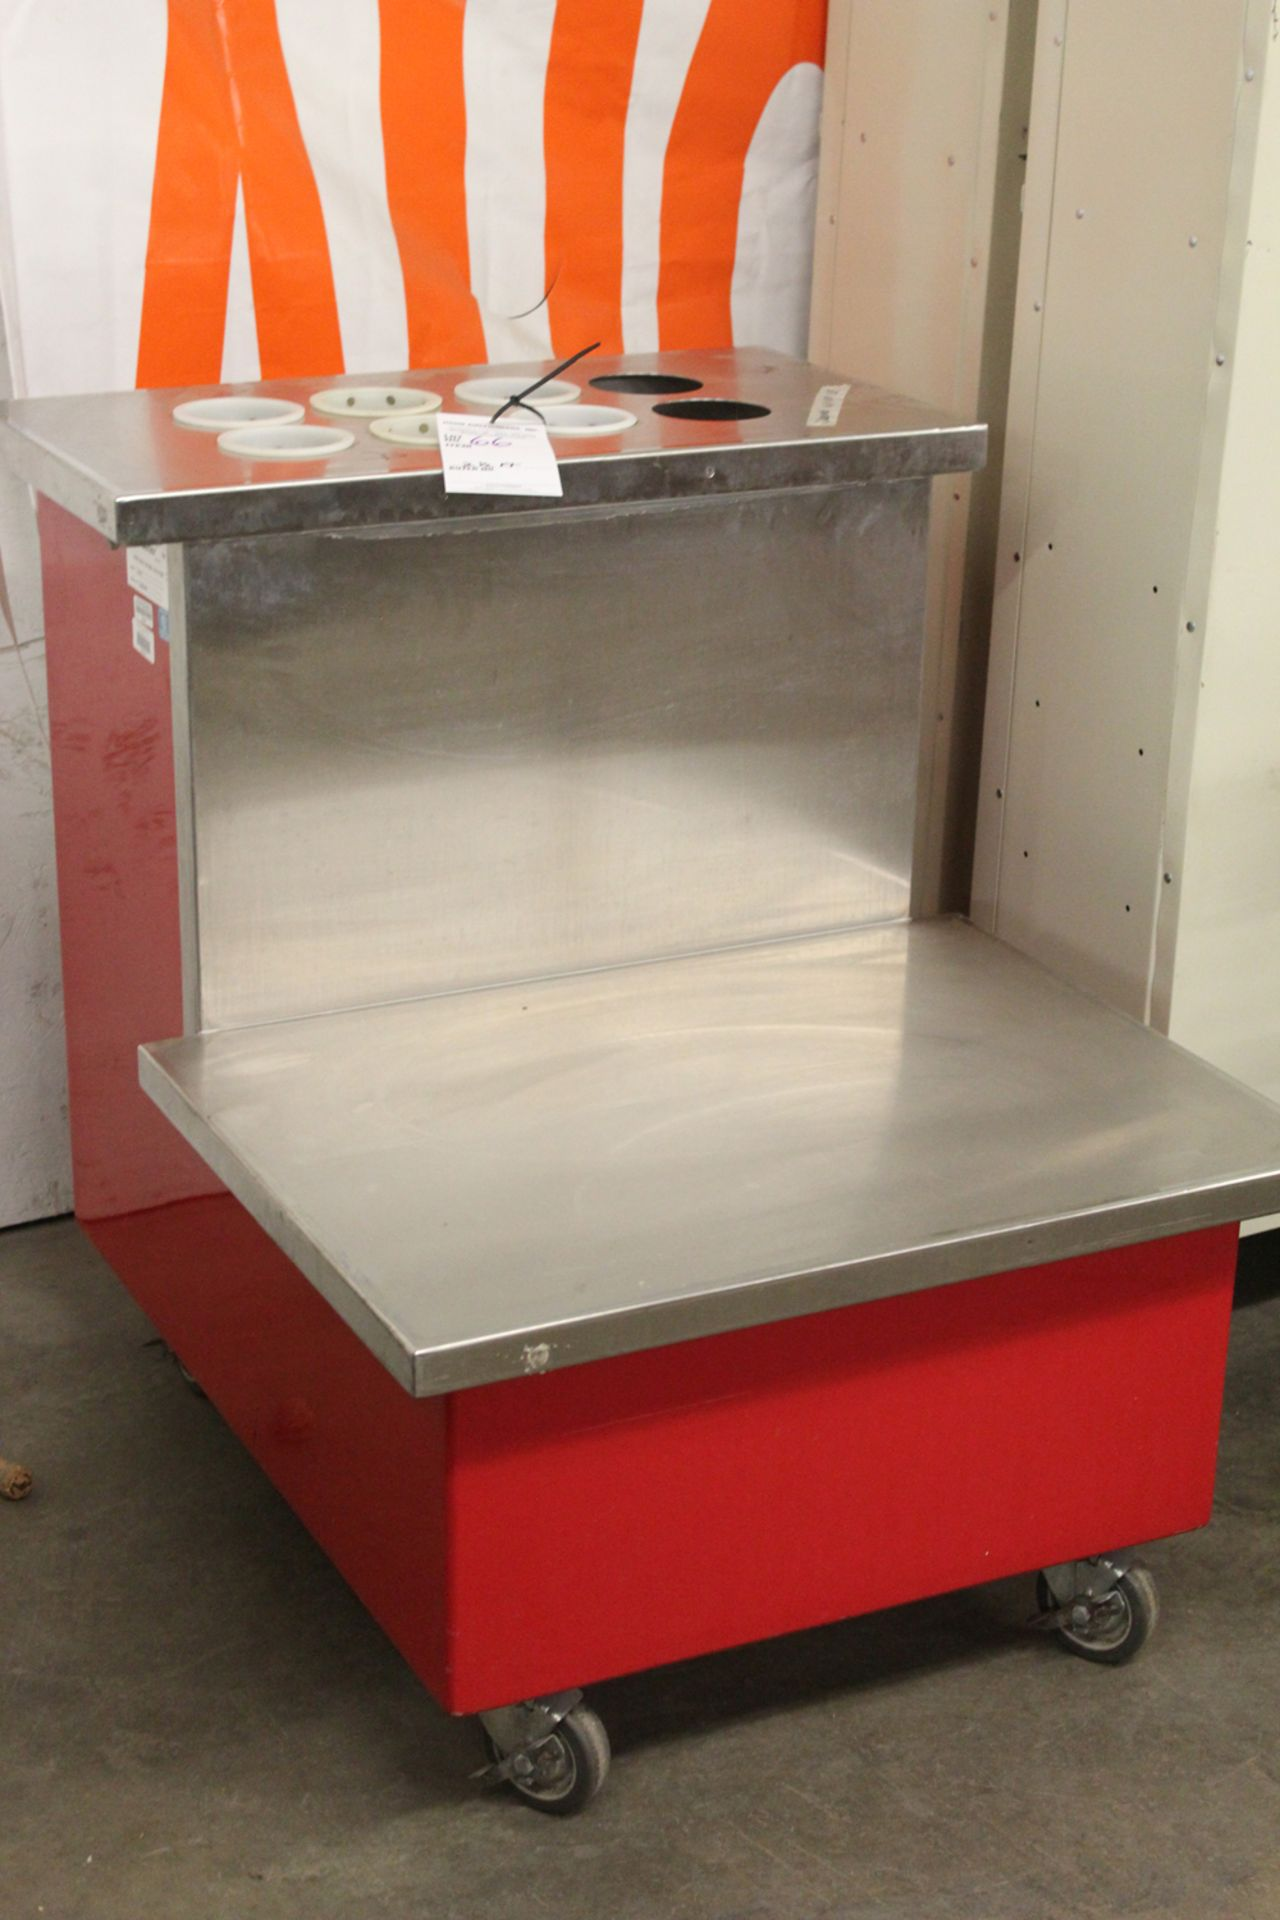 Lot 66 - color point portable work counter mode 36-RTE